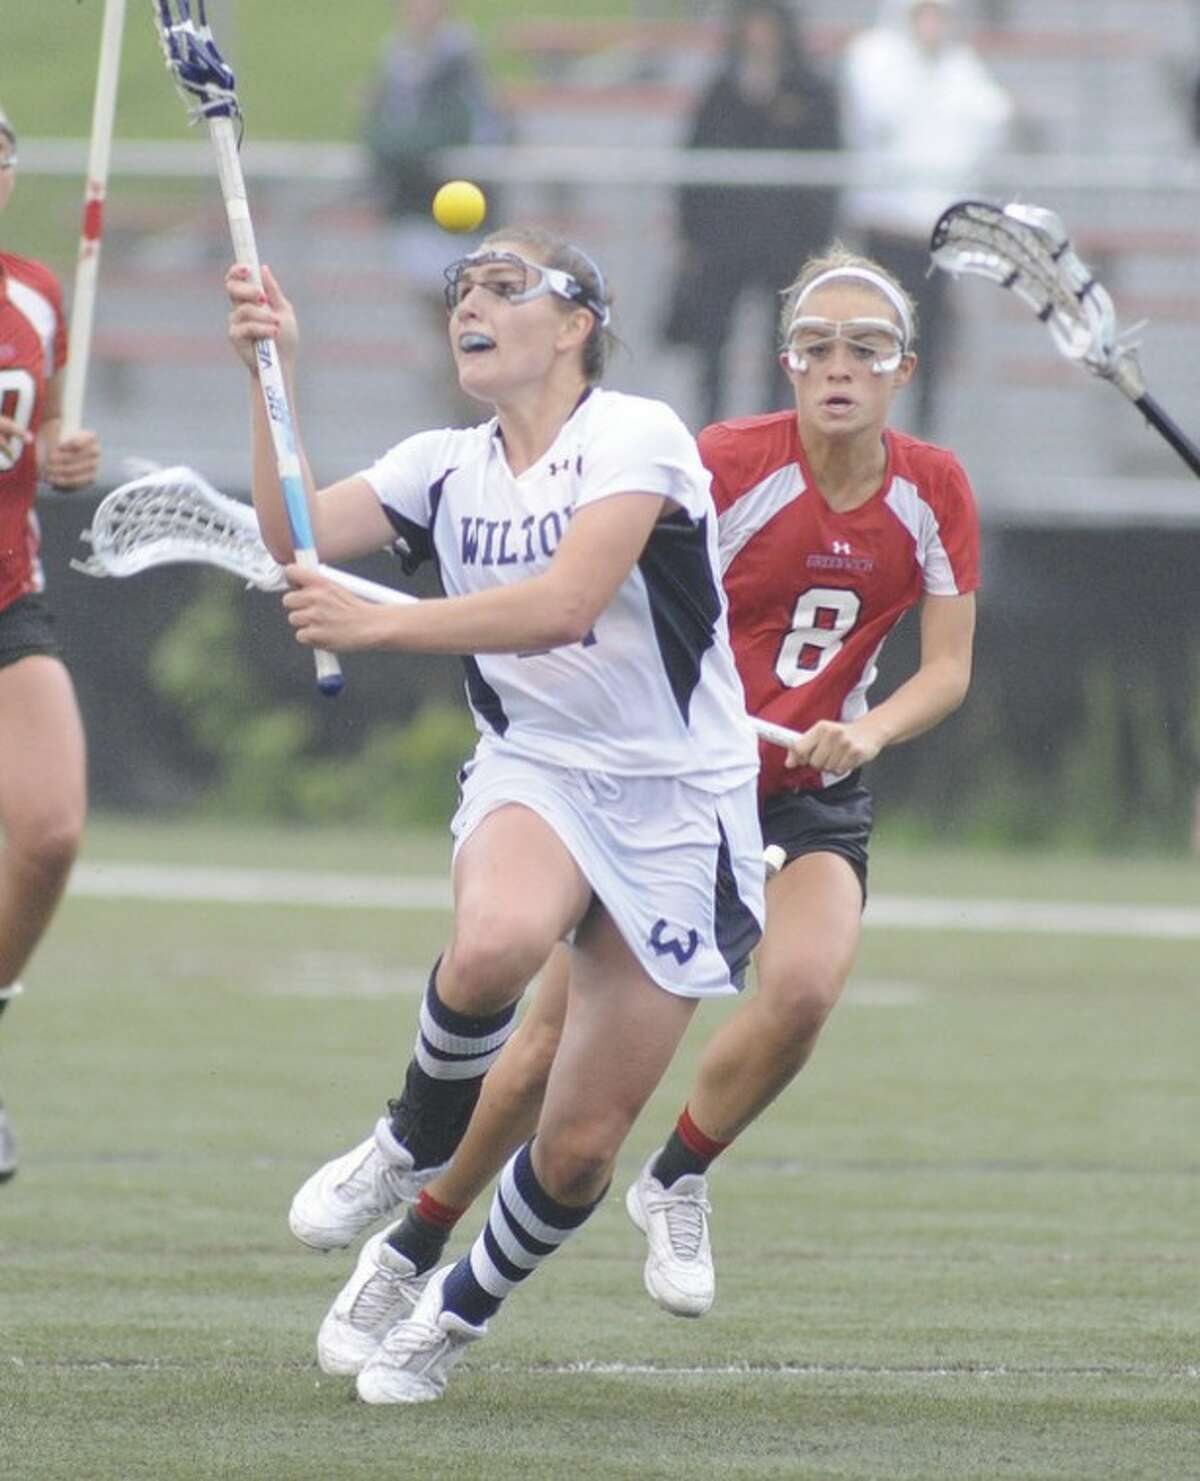 Hour photo/John Nash Wilton's Casey Pearsall, left, has the ball checked from her stick by Greenwich's Tori Dunster late in the second half of Monday's FCIAC girls lacrosse semifinal at Dunning Field. Greenwich held off the Warriors to take an 11-10 win.